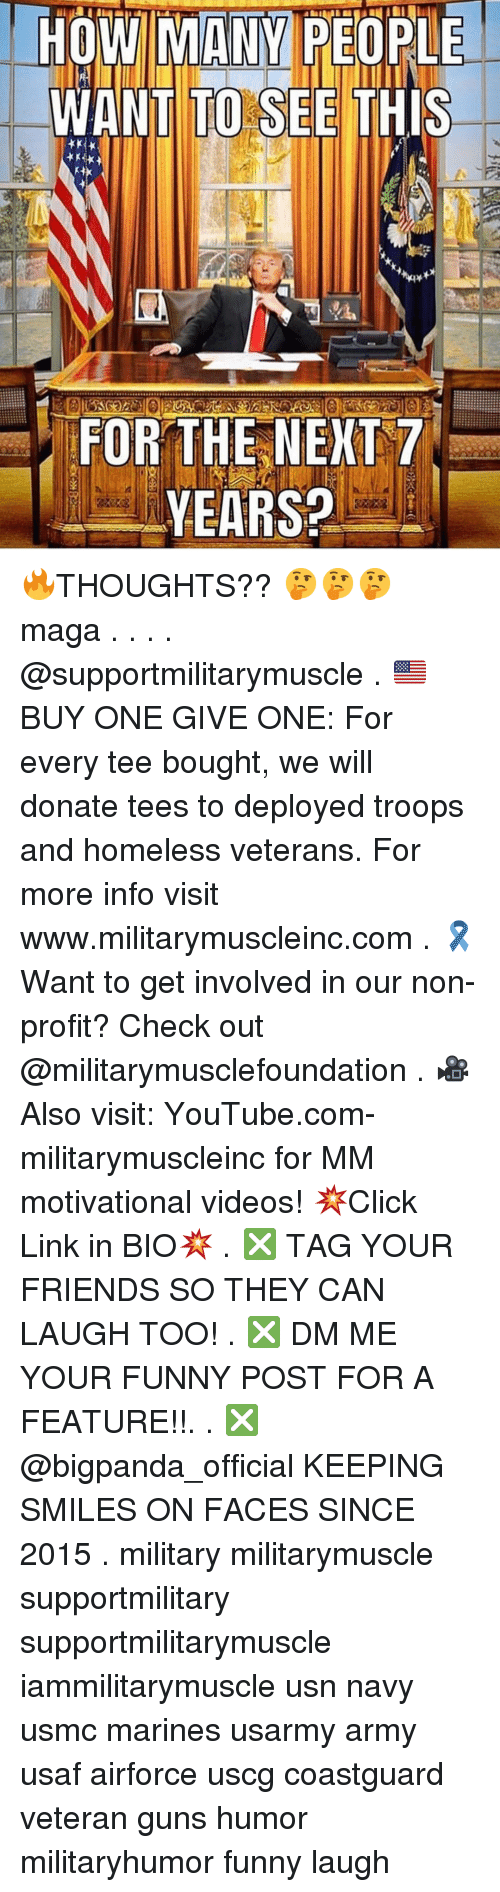 your funny: HOW MANY PEOPLE  WANT TO SEE THIS  K1  FOR THEI EXT 7  YEARS? 🔥THOUGHTS?? 🤔🤔🤔 maga . . . . @supportmilitarymuscle . 🇺🇸BUY ONE GIVE ONE: For every tee bought, we will donate tees to deployed troops and homeless veterans. For more info visit www.militarymuscleinc.com . 🎗Want to get involved in our non-profit? Check out @militarymusclefoundation . 🎥Also visit: YouTube.com-militarymuscleinc for MM motivational videos! 💥Click Link in BIO💥 . ❎ TAG YOUR FRIENDS SO THEY CAN LAUGH TOO! . ❎ DM ME YOUR FUNNY POST FOR A FEATURE!!. . ❎ @bigpanda_official KEEPING SMILES ON FACES SINCE 2015 . military militarymuscle supportmilitary supportmilitarymuscle iammilitarymuscle usn navy usmc marines usarmy army usaf airforce uscg coastguard veteran guns humor militaryhumor funny laugh